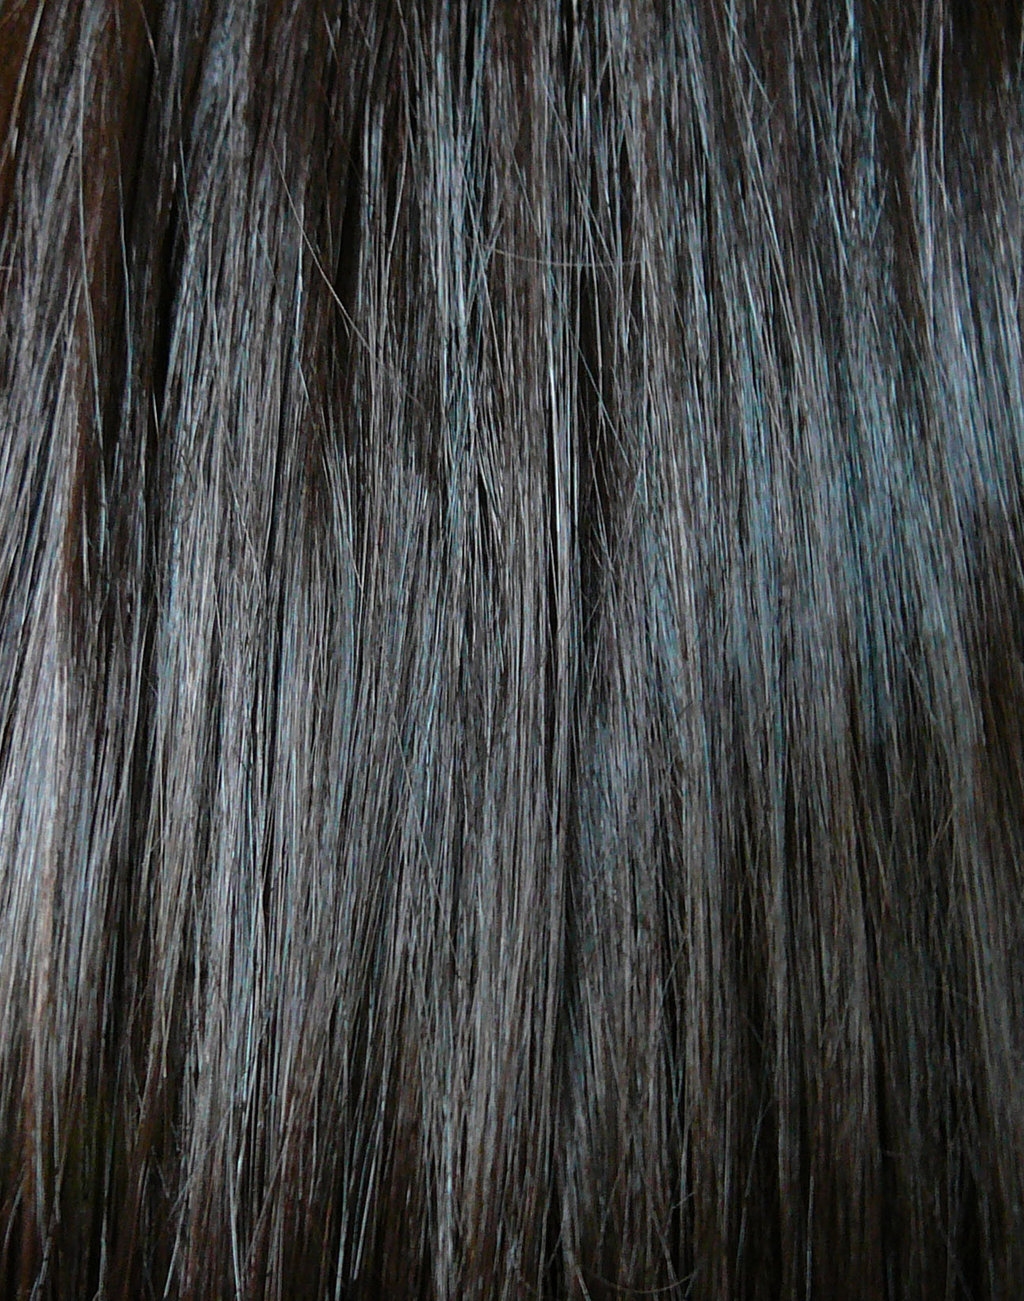 hair texture, background, black hair texture, background